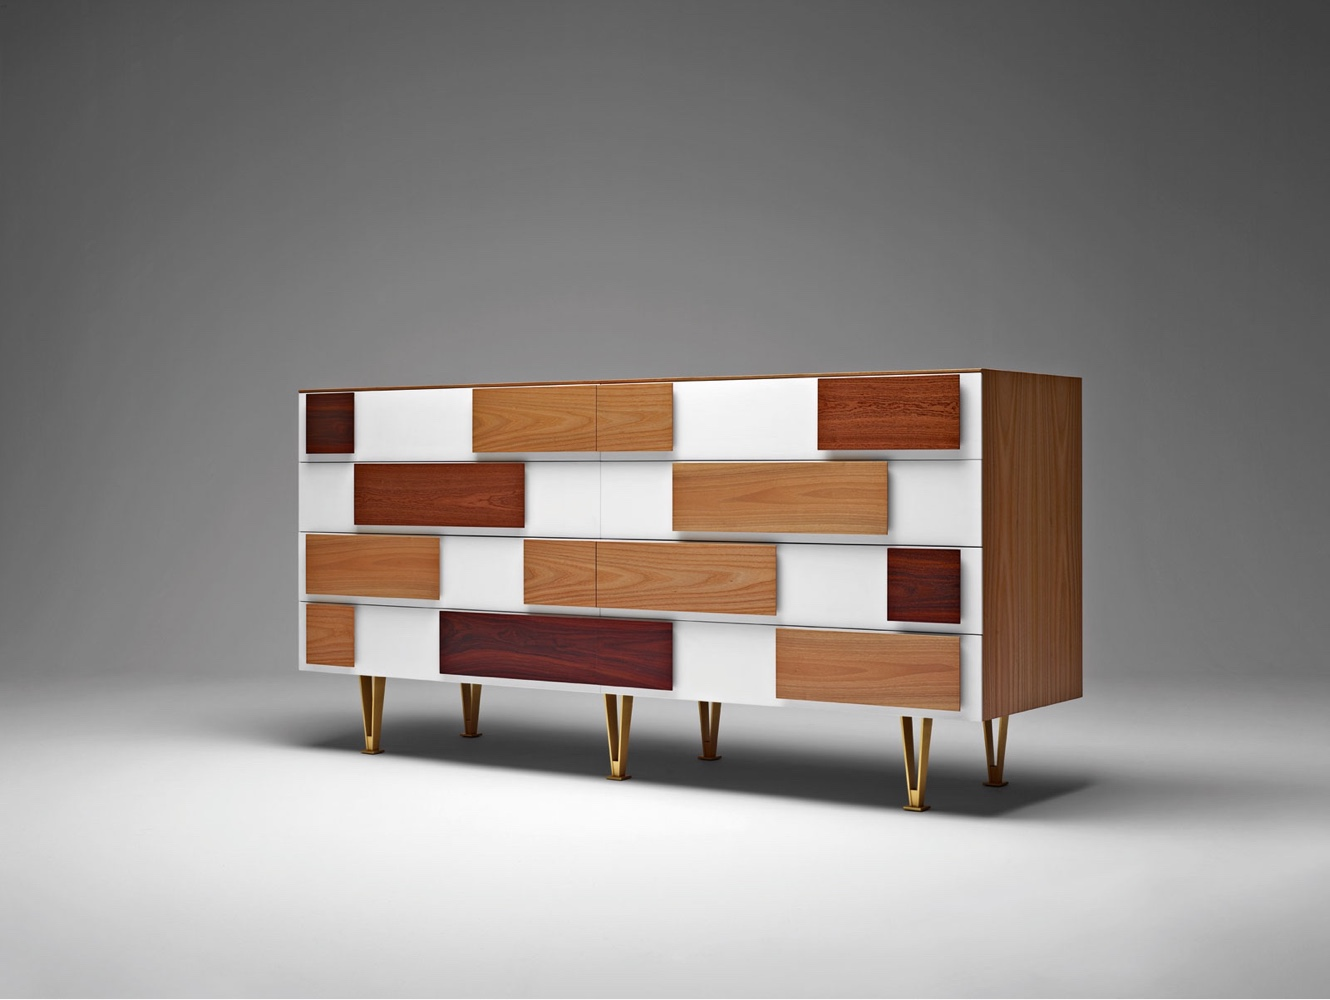 Chest of drawers by Gio Ponti